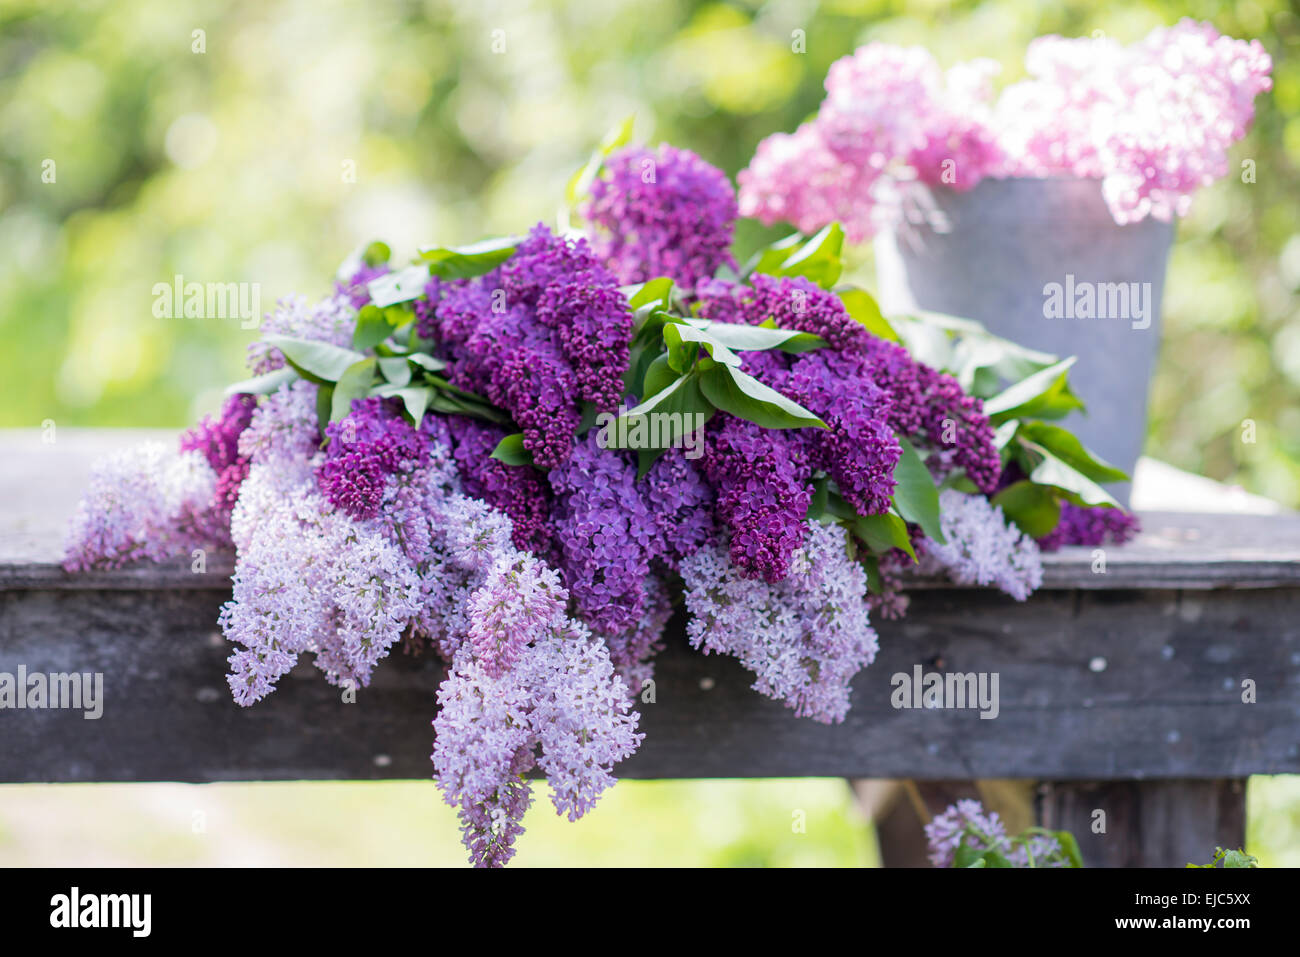 Cut stems of lilac blossoms (Syringa vulgaris) in spring Stock Photo